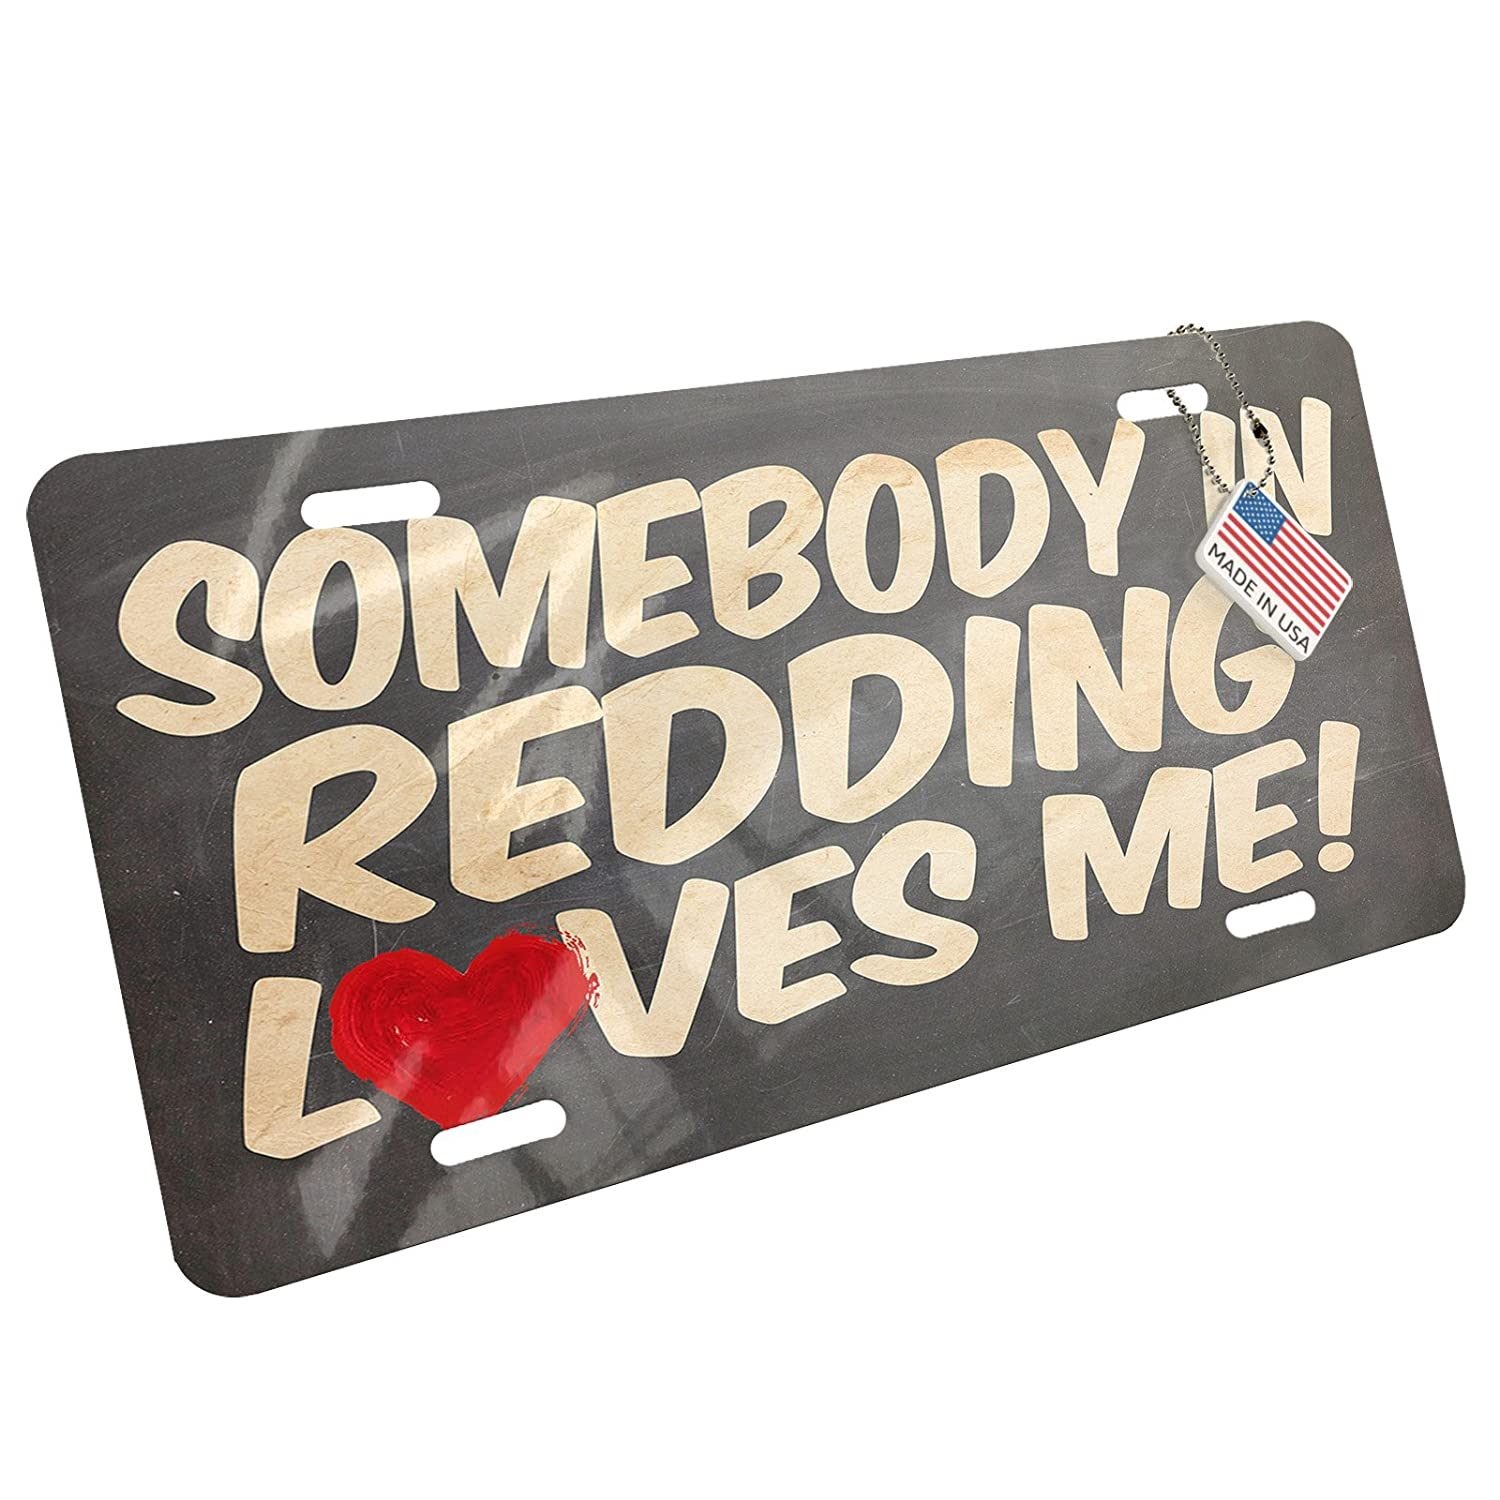 Amazon com neonblond metal license plate somebody in redding loves me california automotive